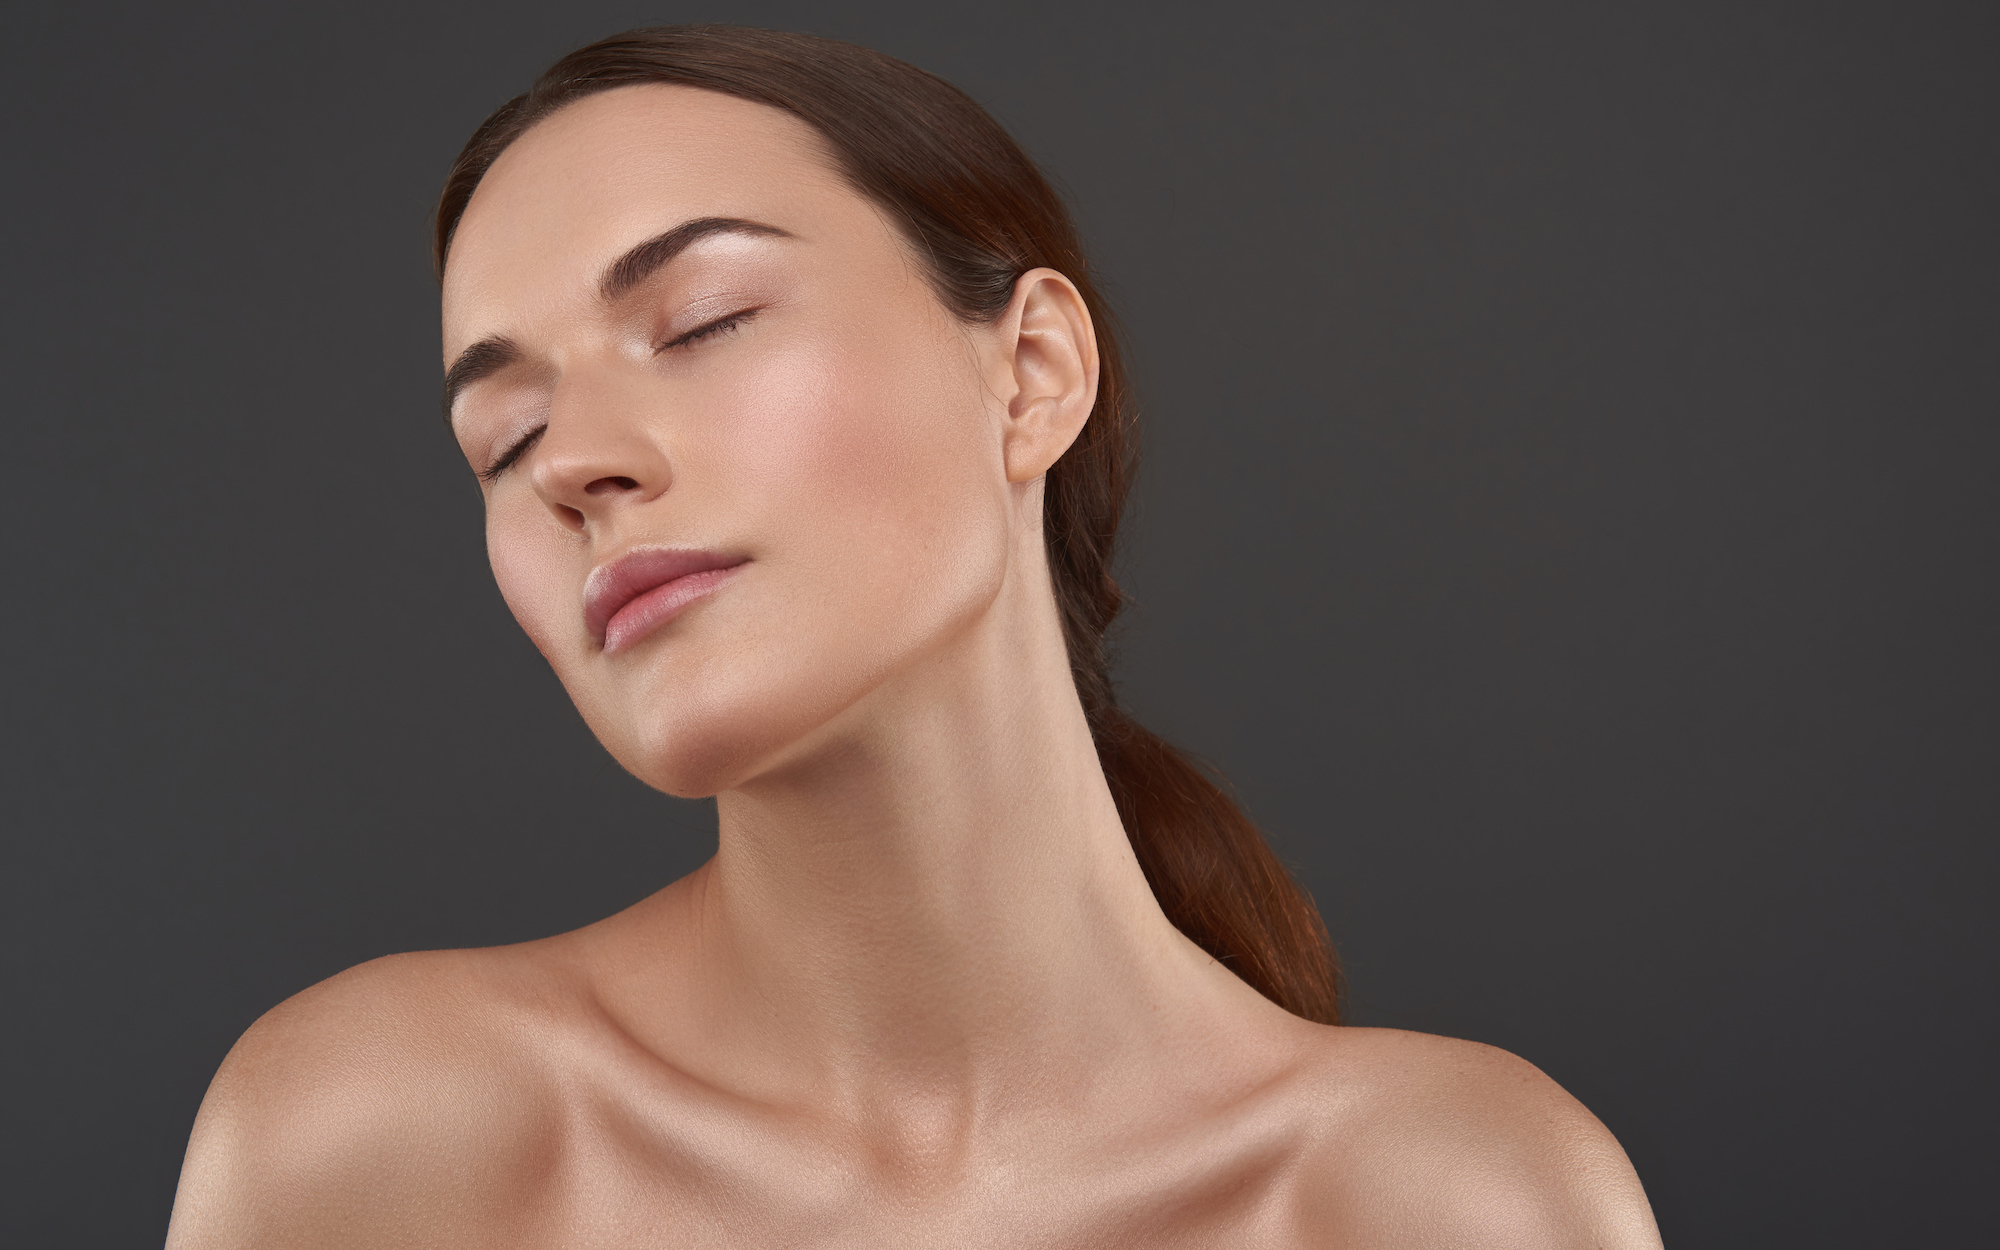 Close up portrait of attractive lady with jawline facing camera, naked shoulders, eyes closed feeling calm and peaceful